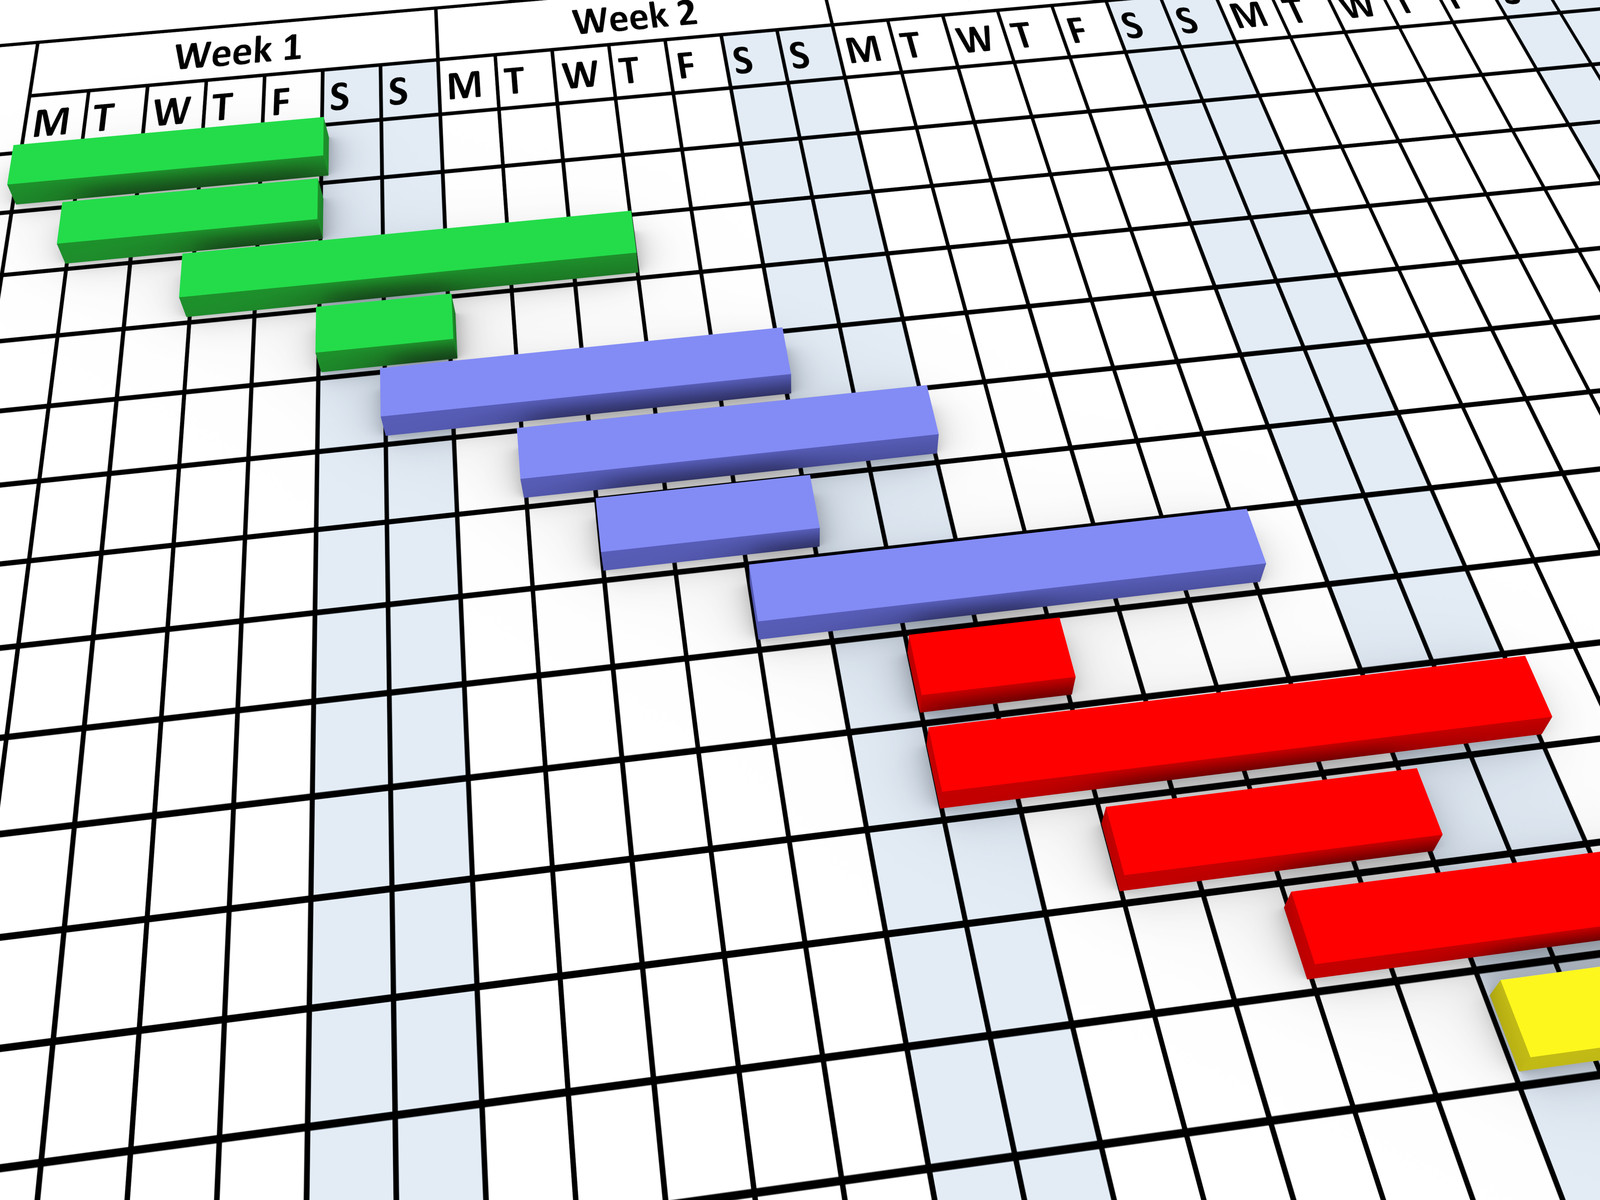 Gantt chart project management tools gantt chart picture nvjuhfo Images